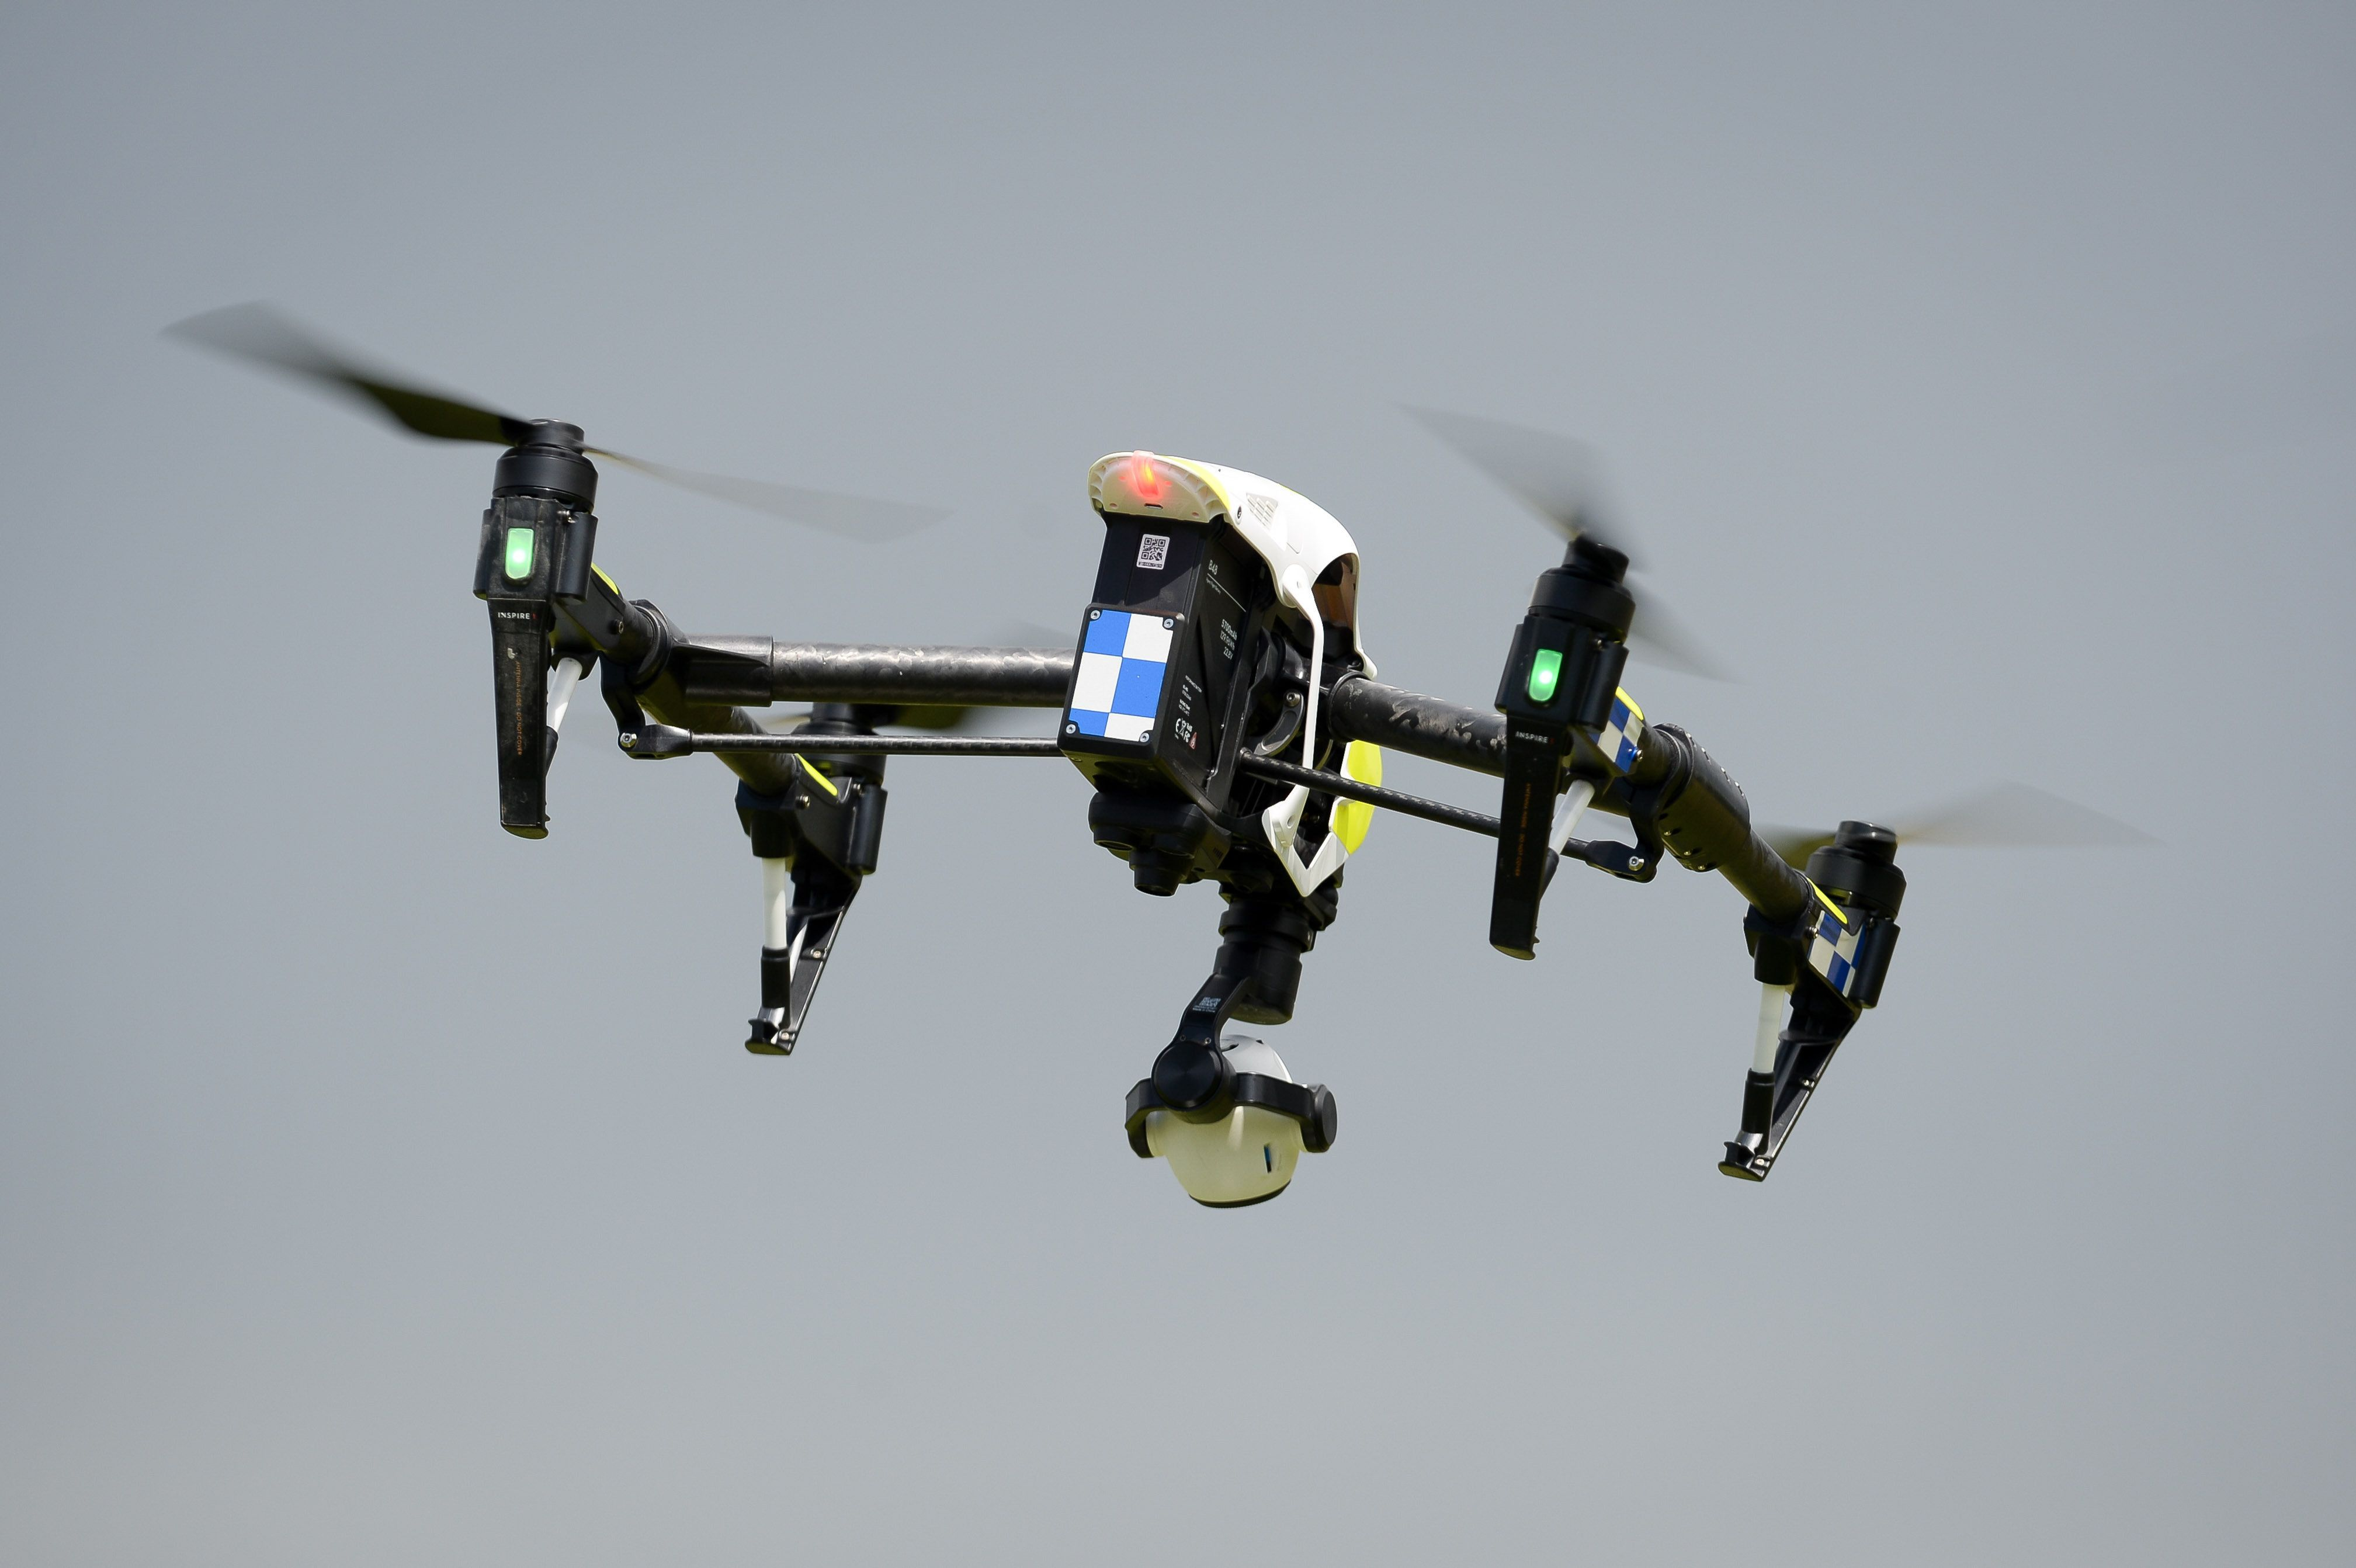 The Police Have Unveiled The First Fully Operational Drone